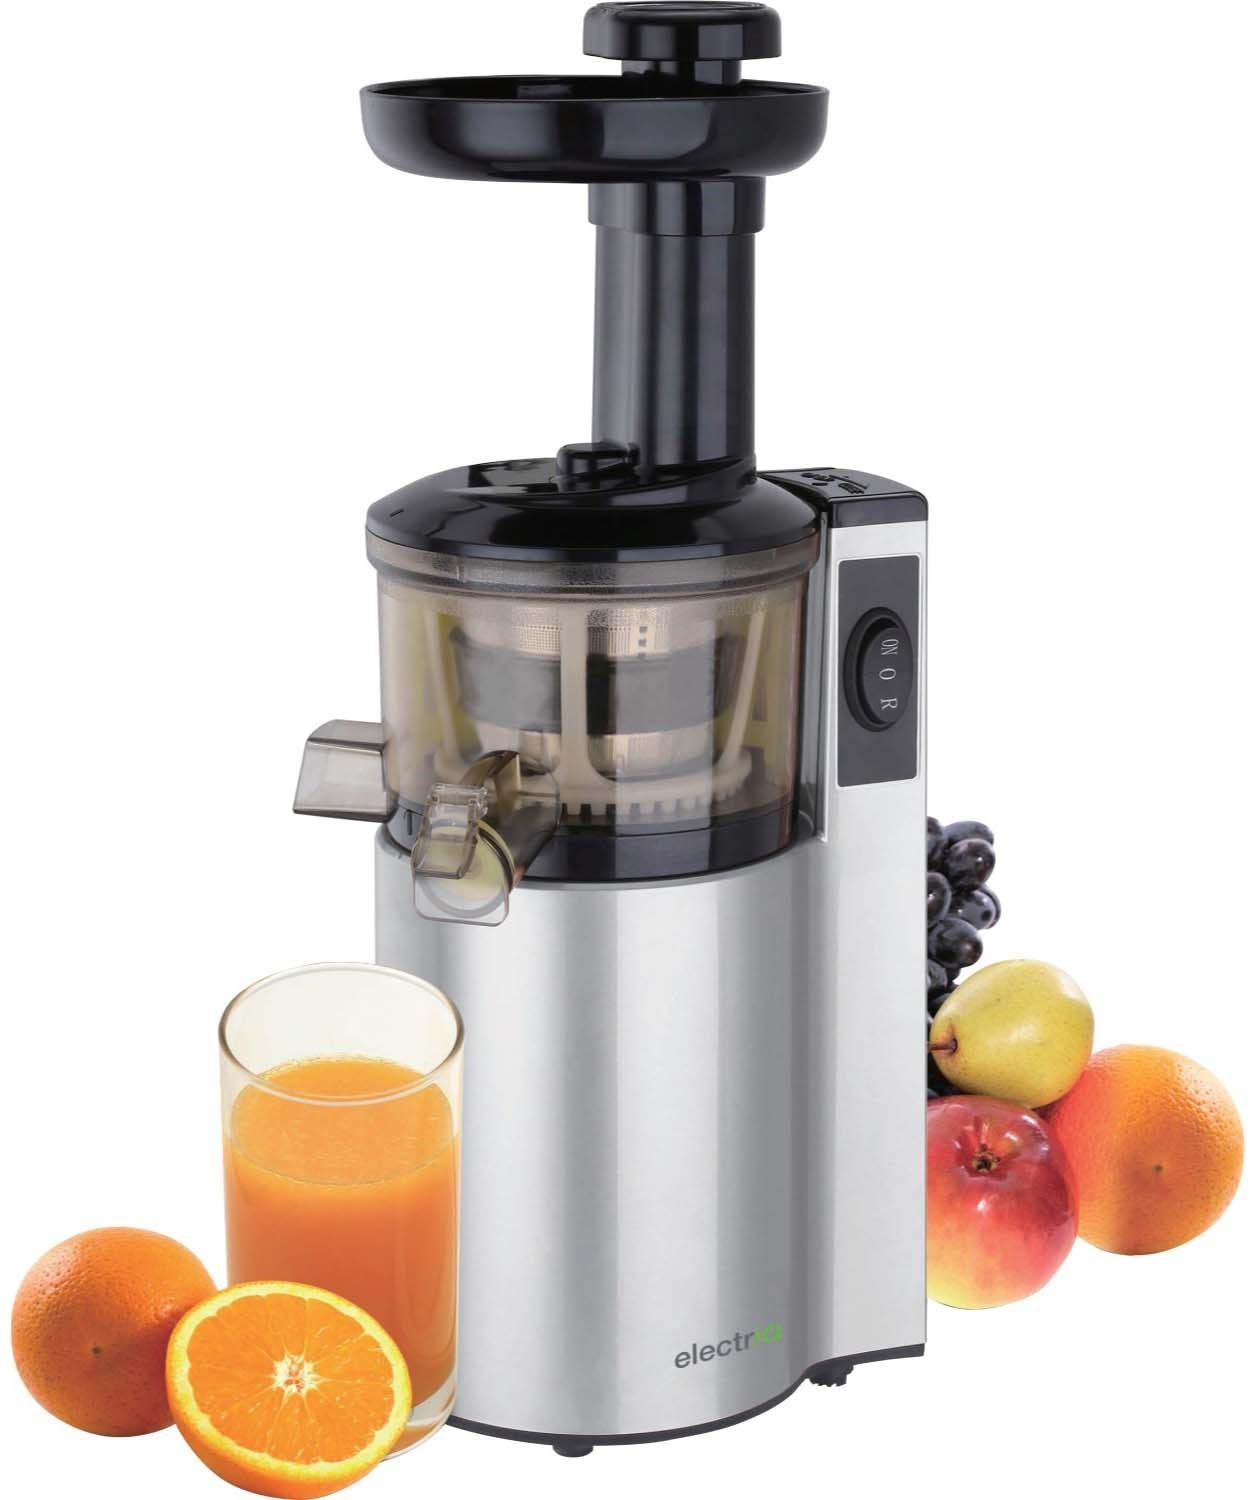 GRADE A1 - ElectriQ Premium Cold Pressed vertical Slow Juicer and Smoothie Maker - BPA Free ...